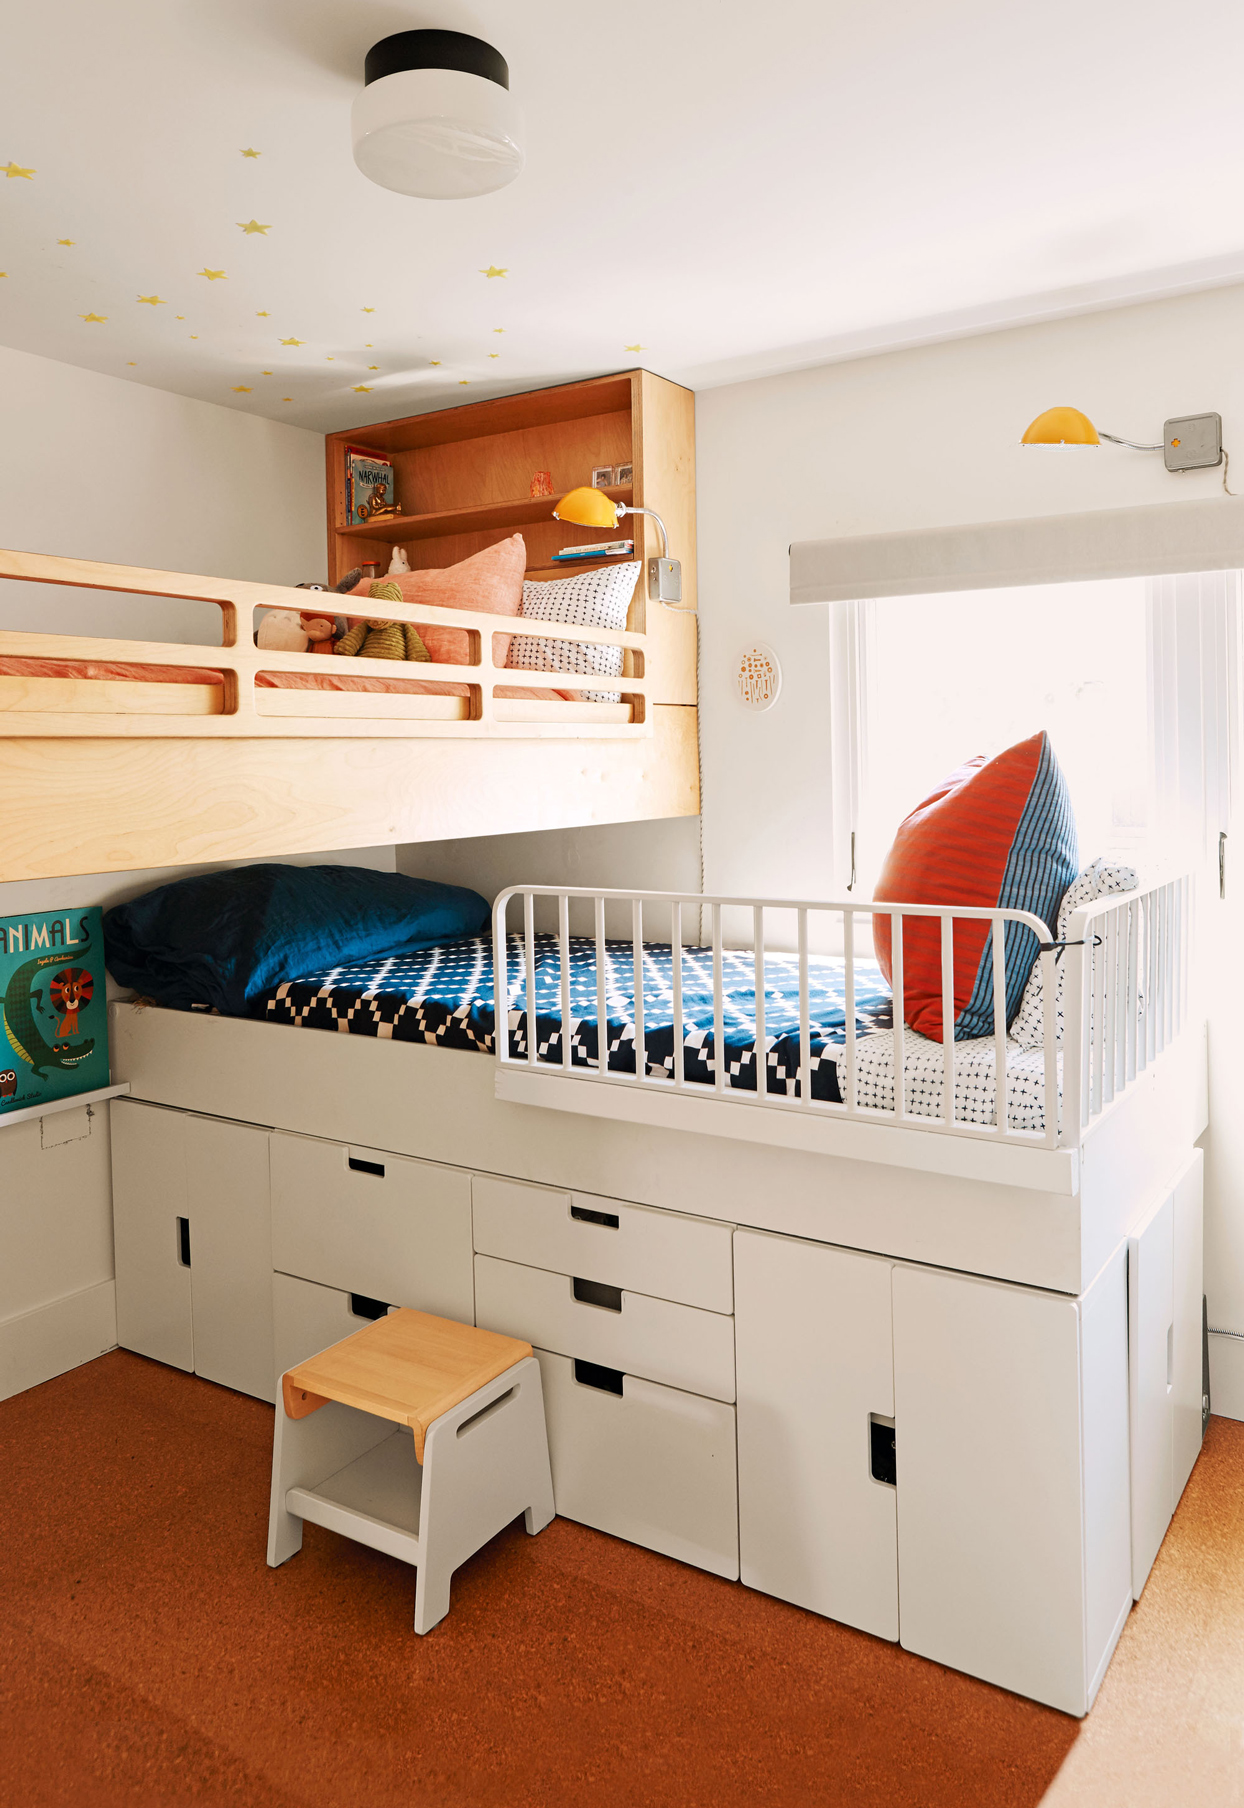 childrens bedroom with stacked beds featuring storage beneath